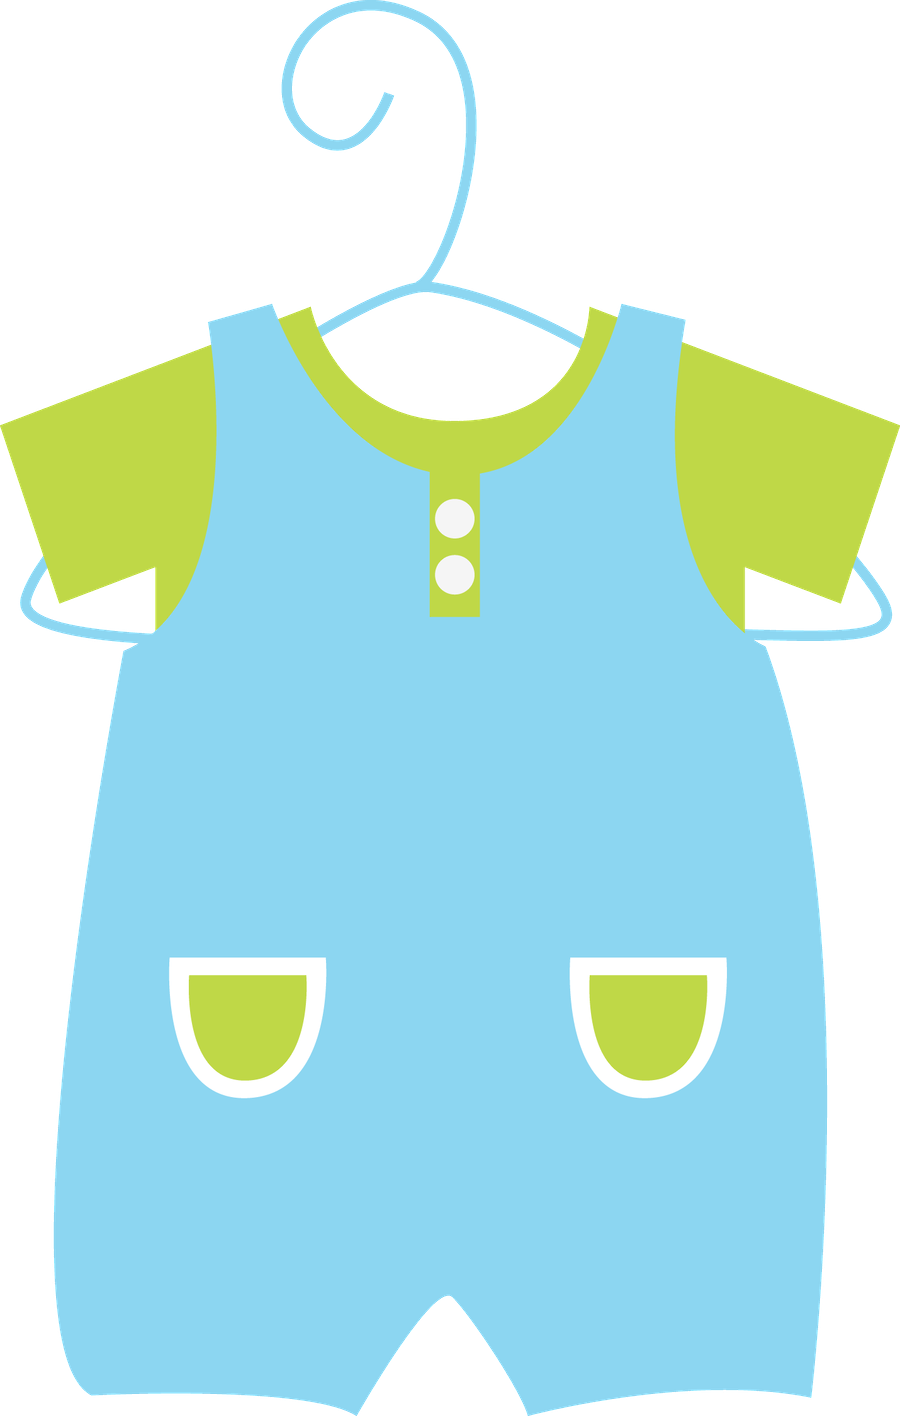 Baby overalls clipart png royalty free library Baby Clothes Clipart | Free download best Baby Clothes Clipart on ... png royalty free library